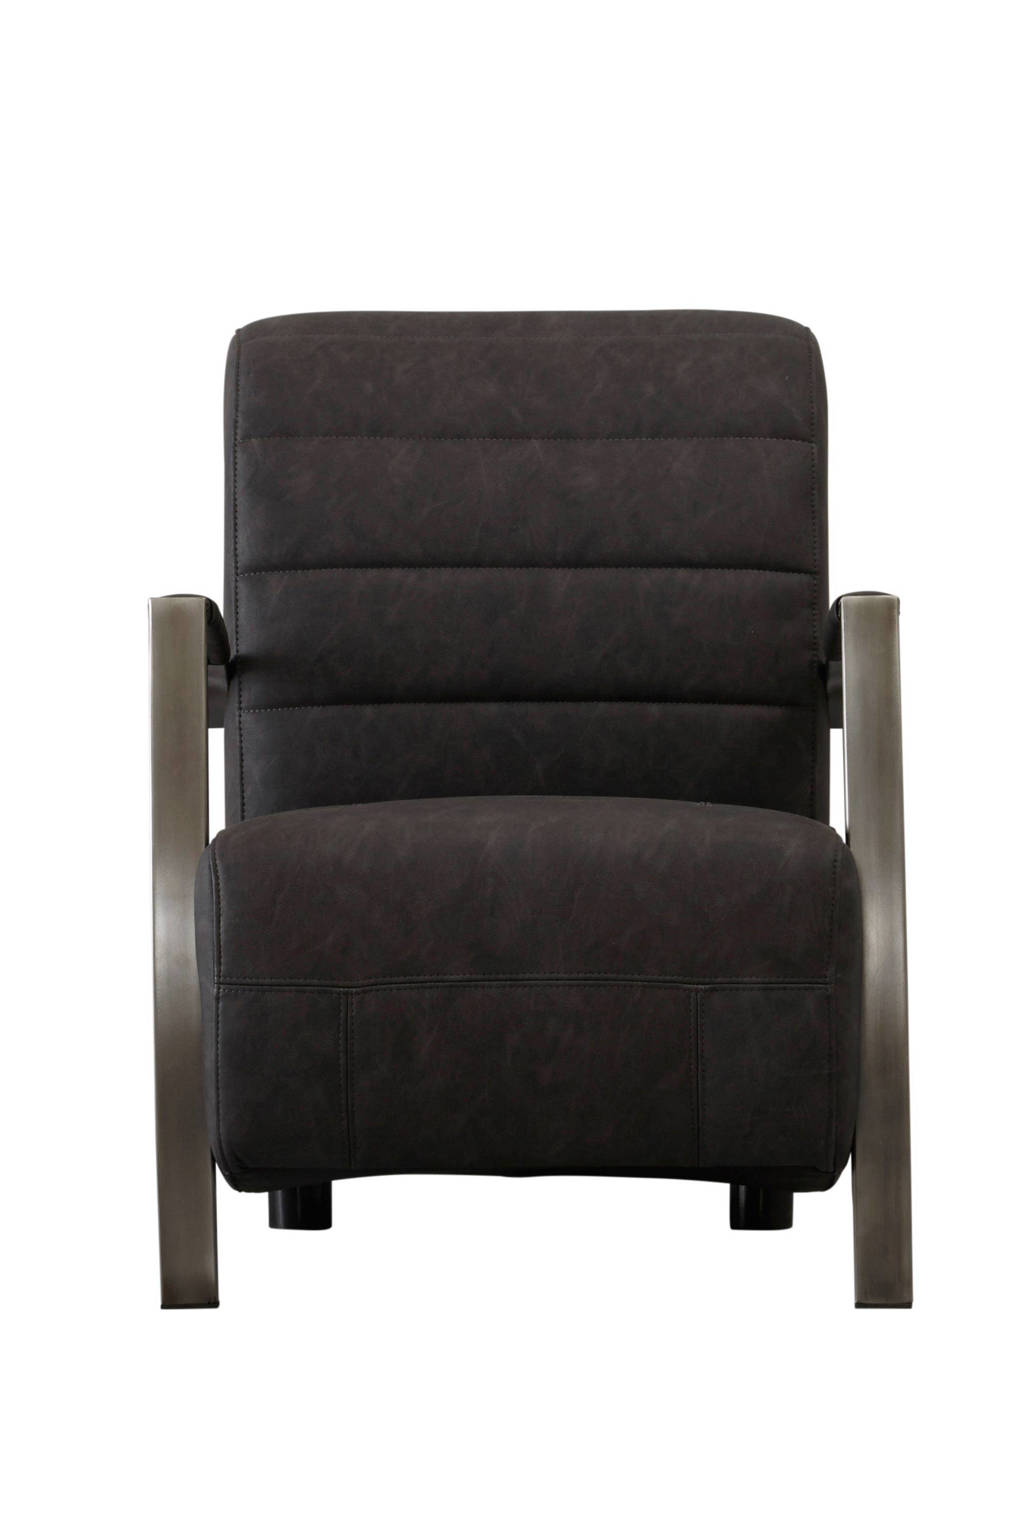 anytime Fauteuil Tom, Antraciet